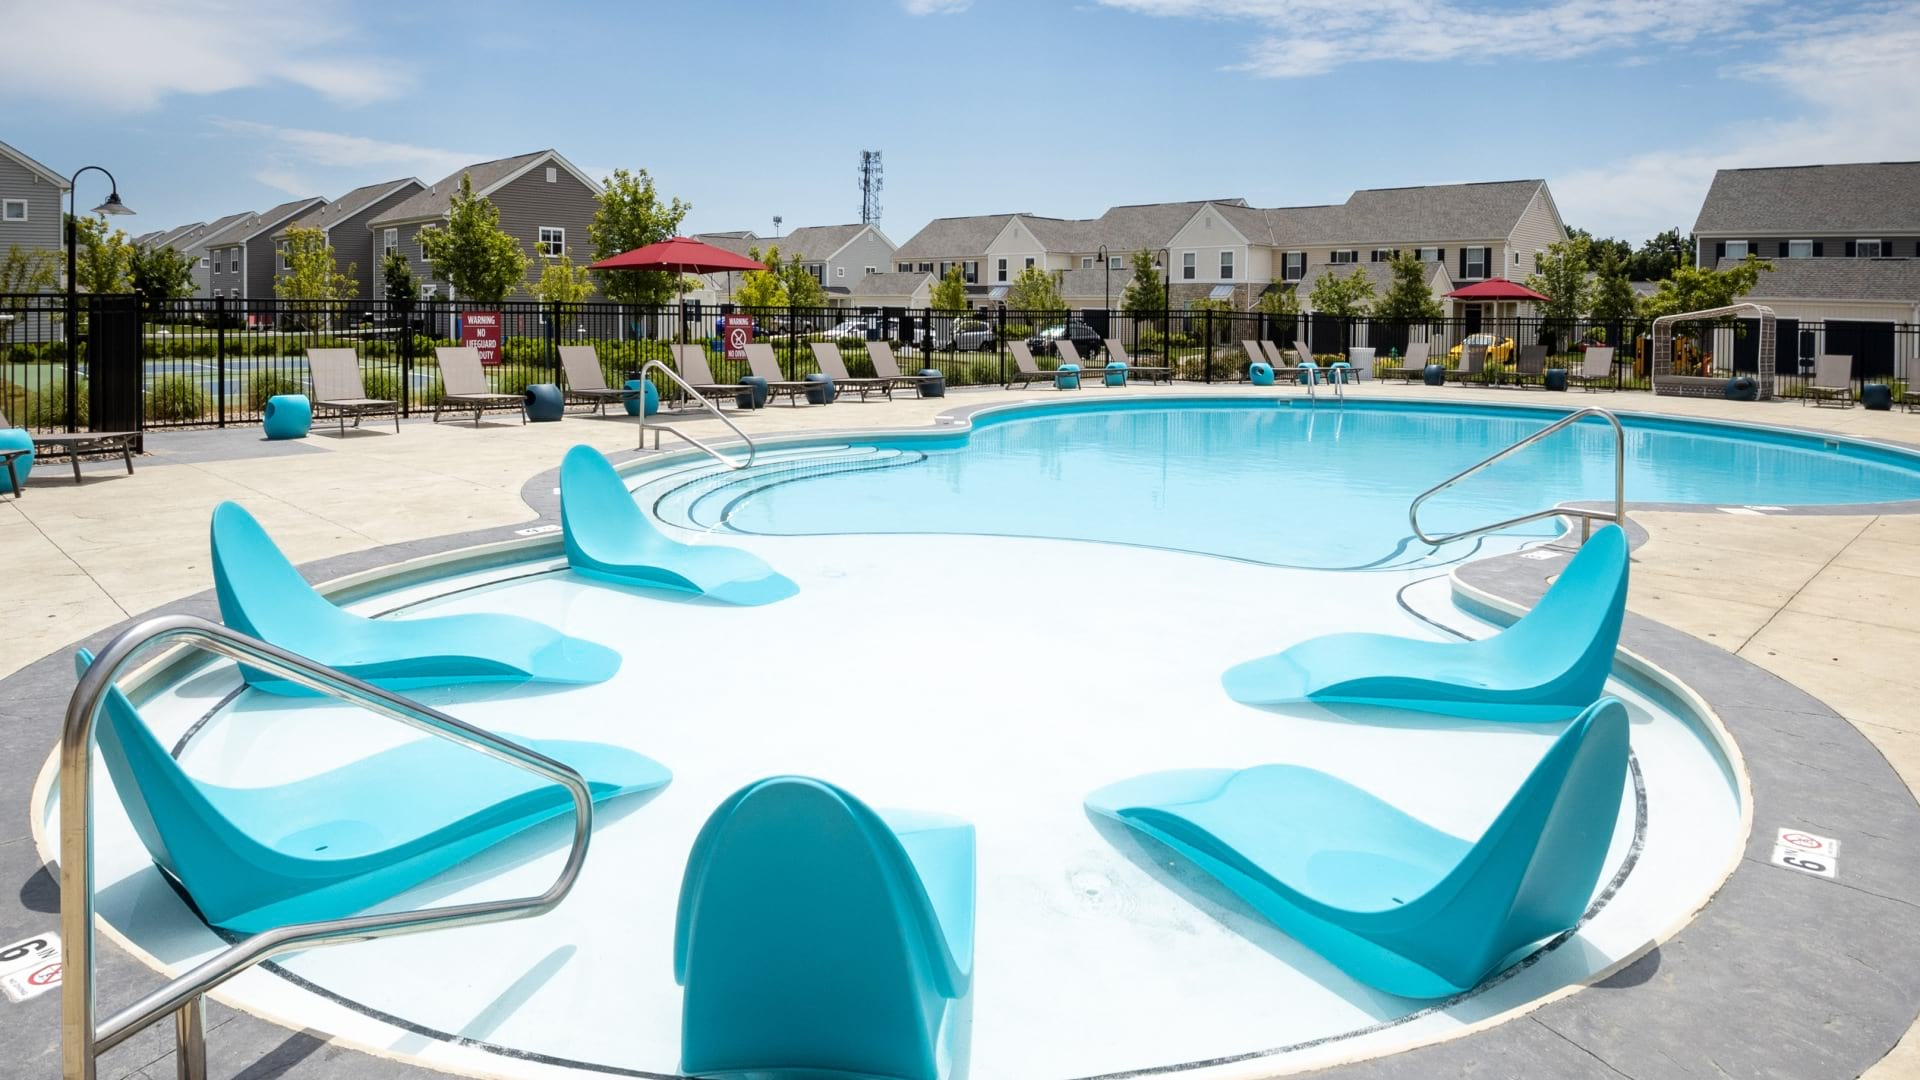 Resort-Style Pool And Lounge Chairs At Our 43065 Apartments in Powell, Ohio